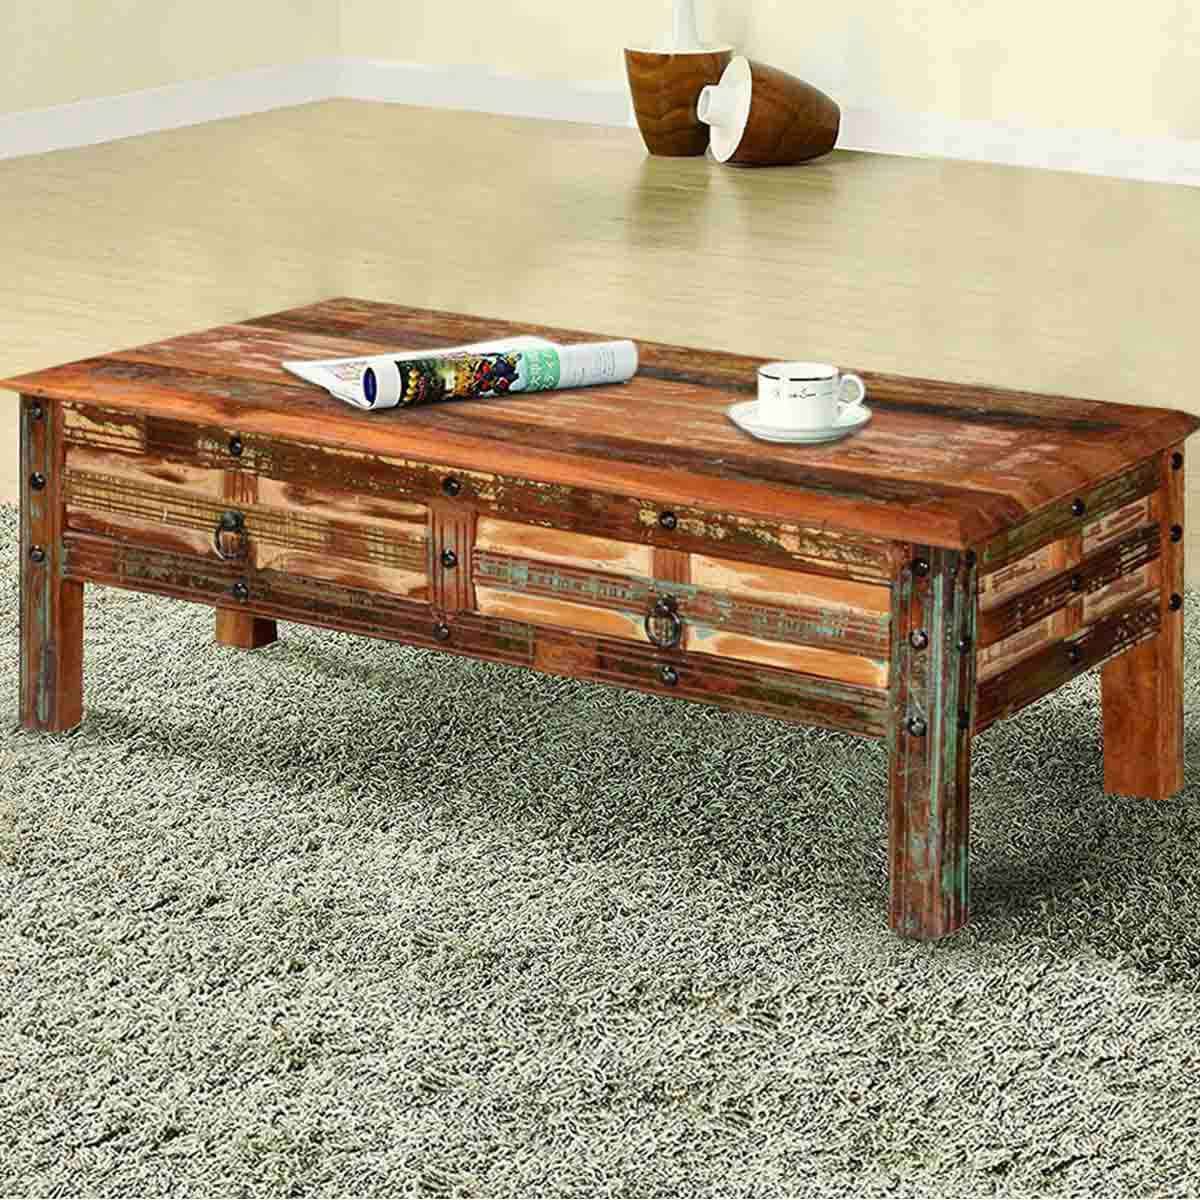 Pioneer rustic reclaimed wood 45 coffee table w drawers Bench coffee tables